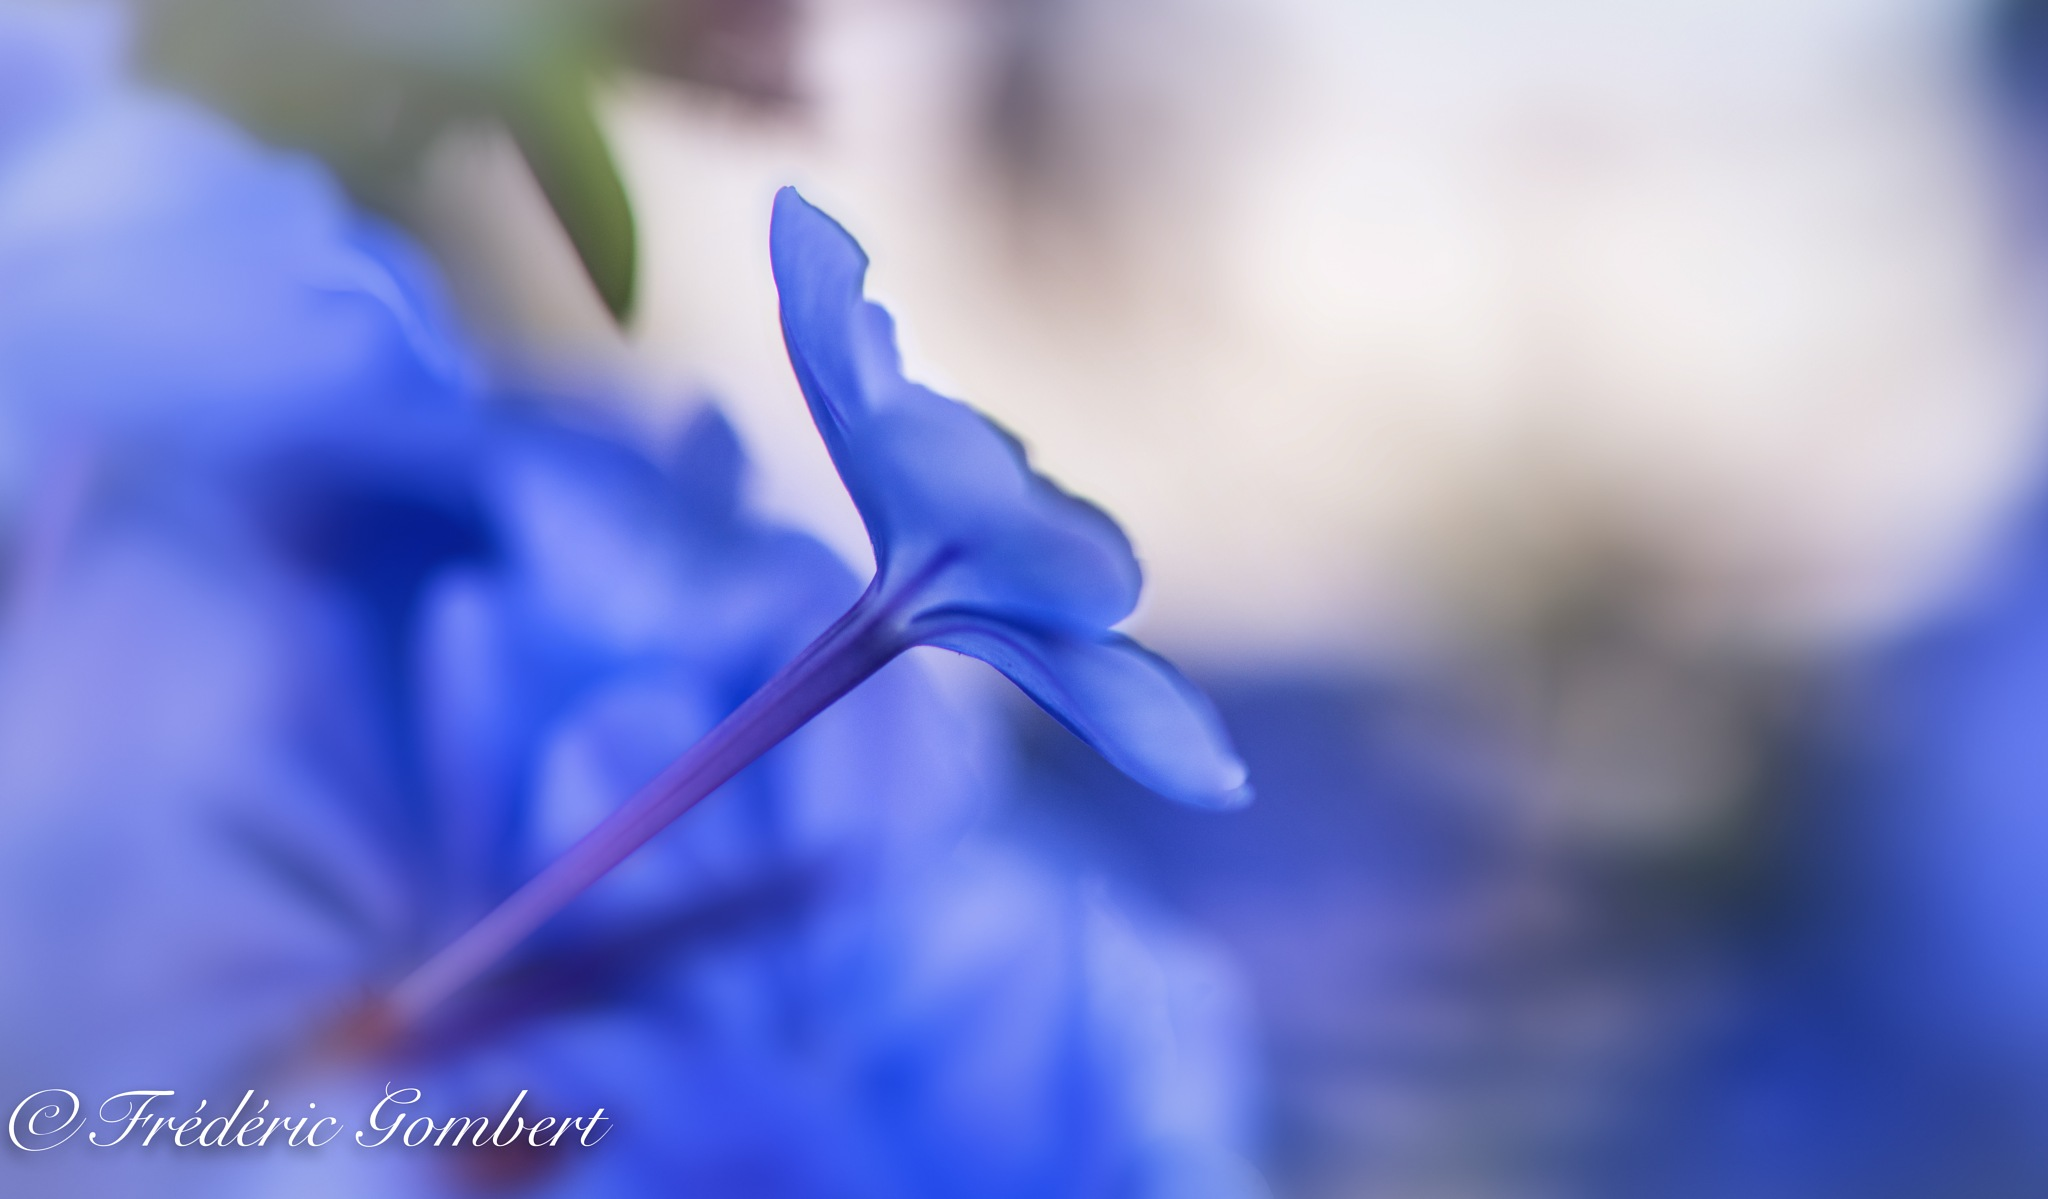 Rising Up by Frederic Gombert